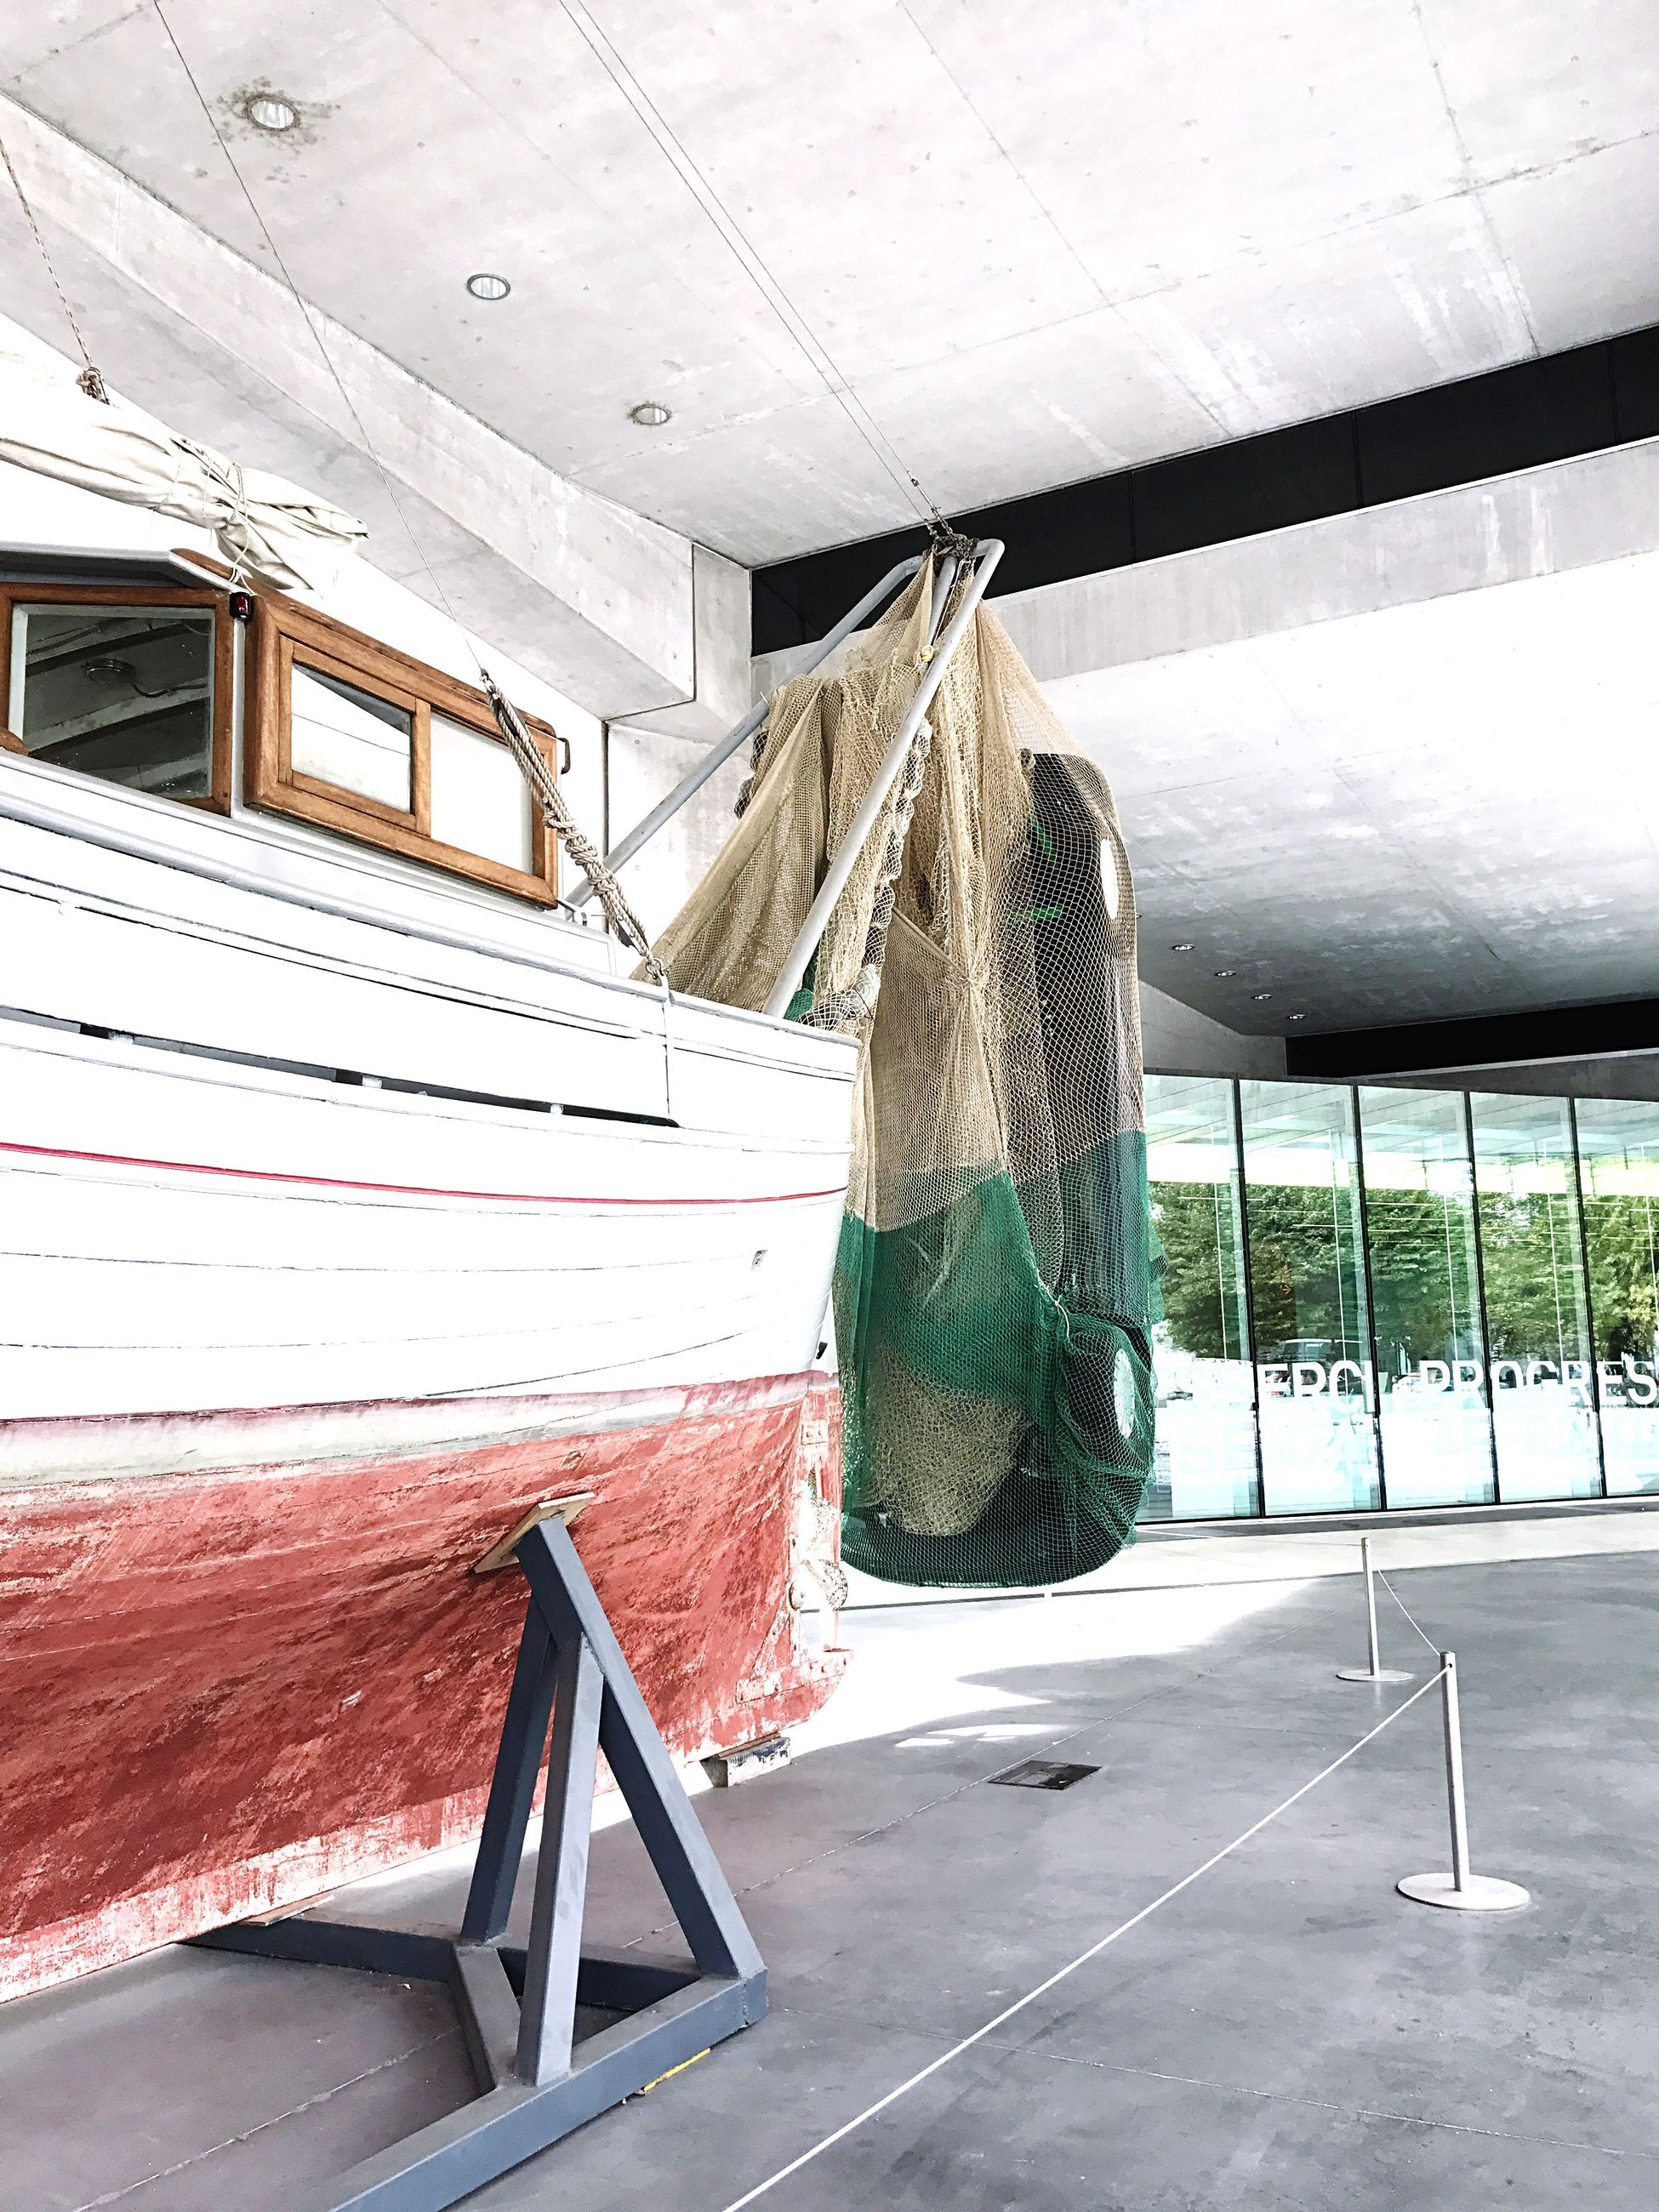 mode of transport, transportation, no people, day, nautical vessel, indoors